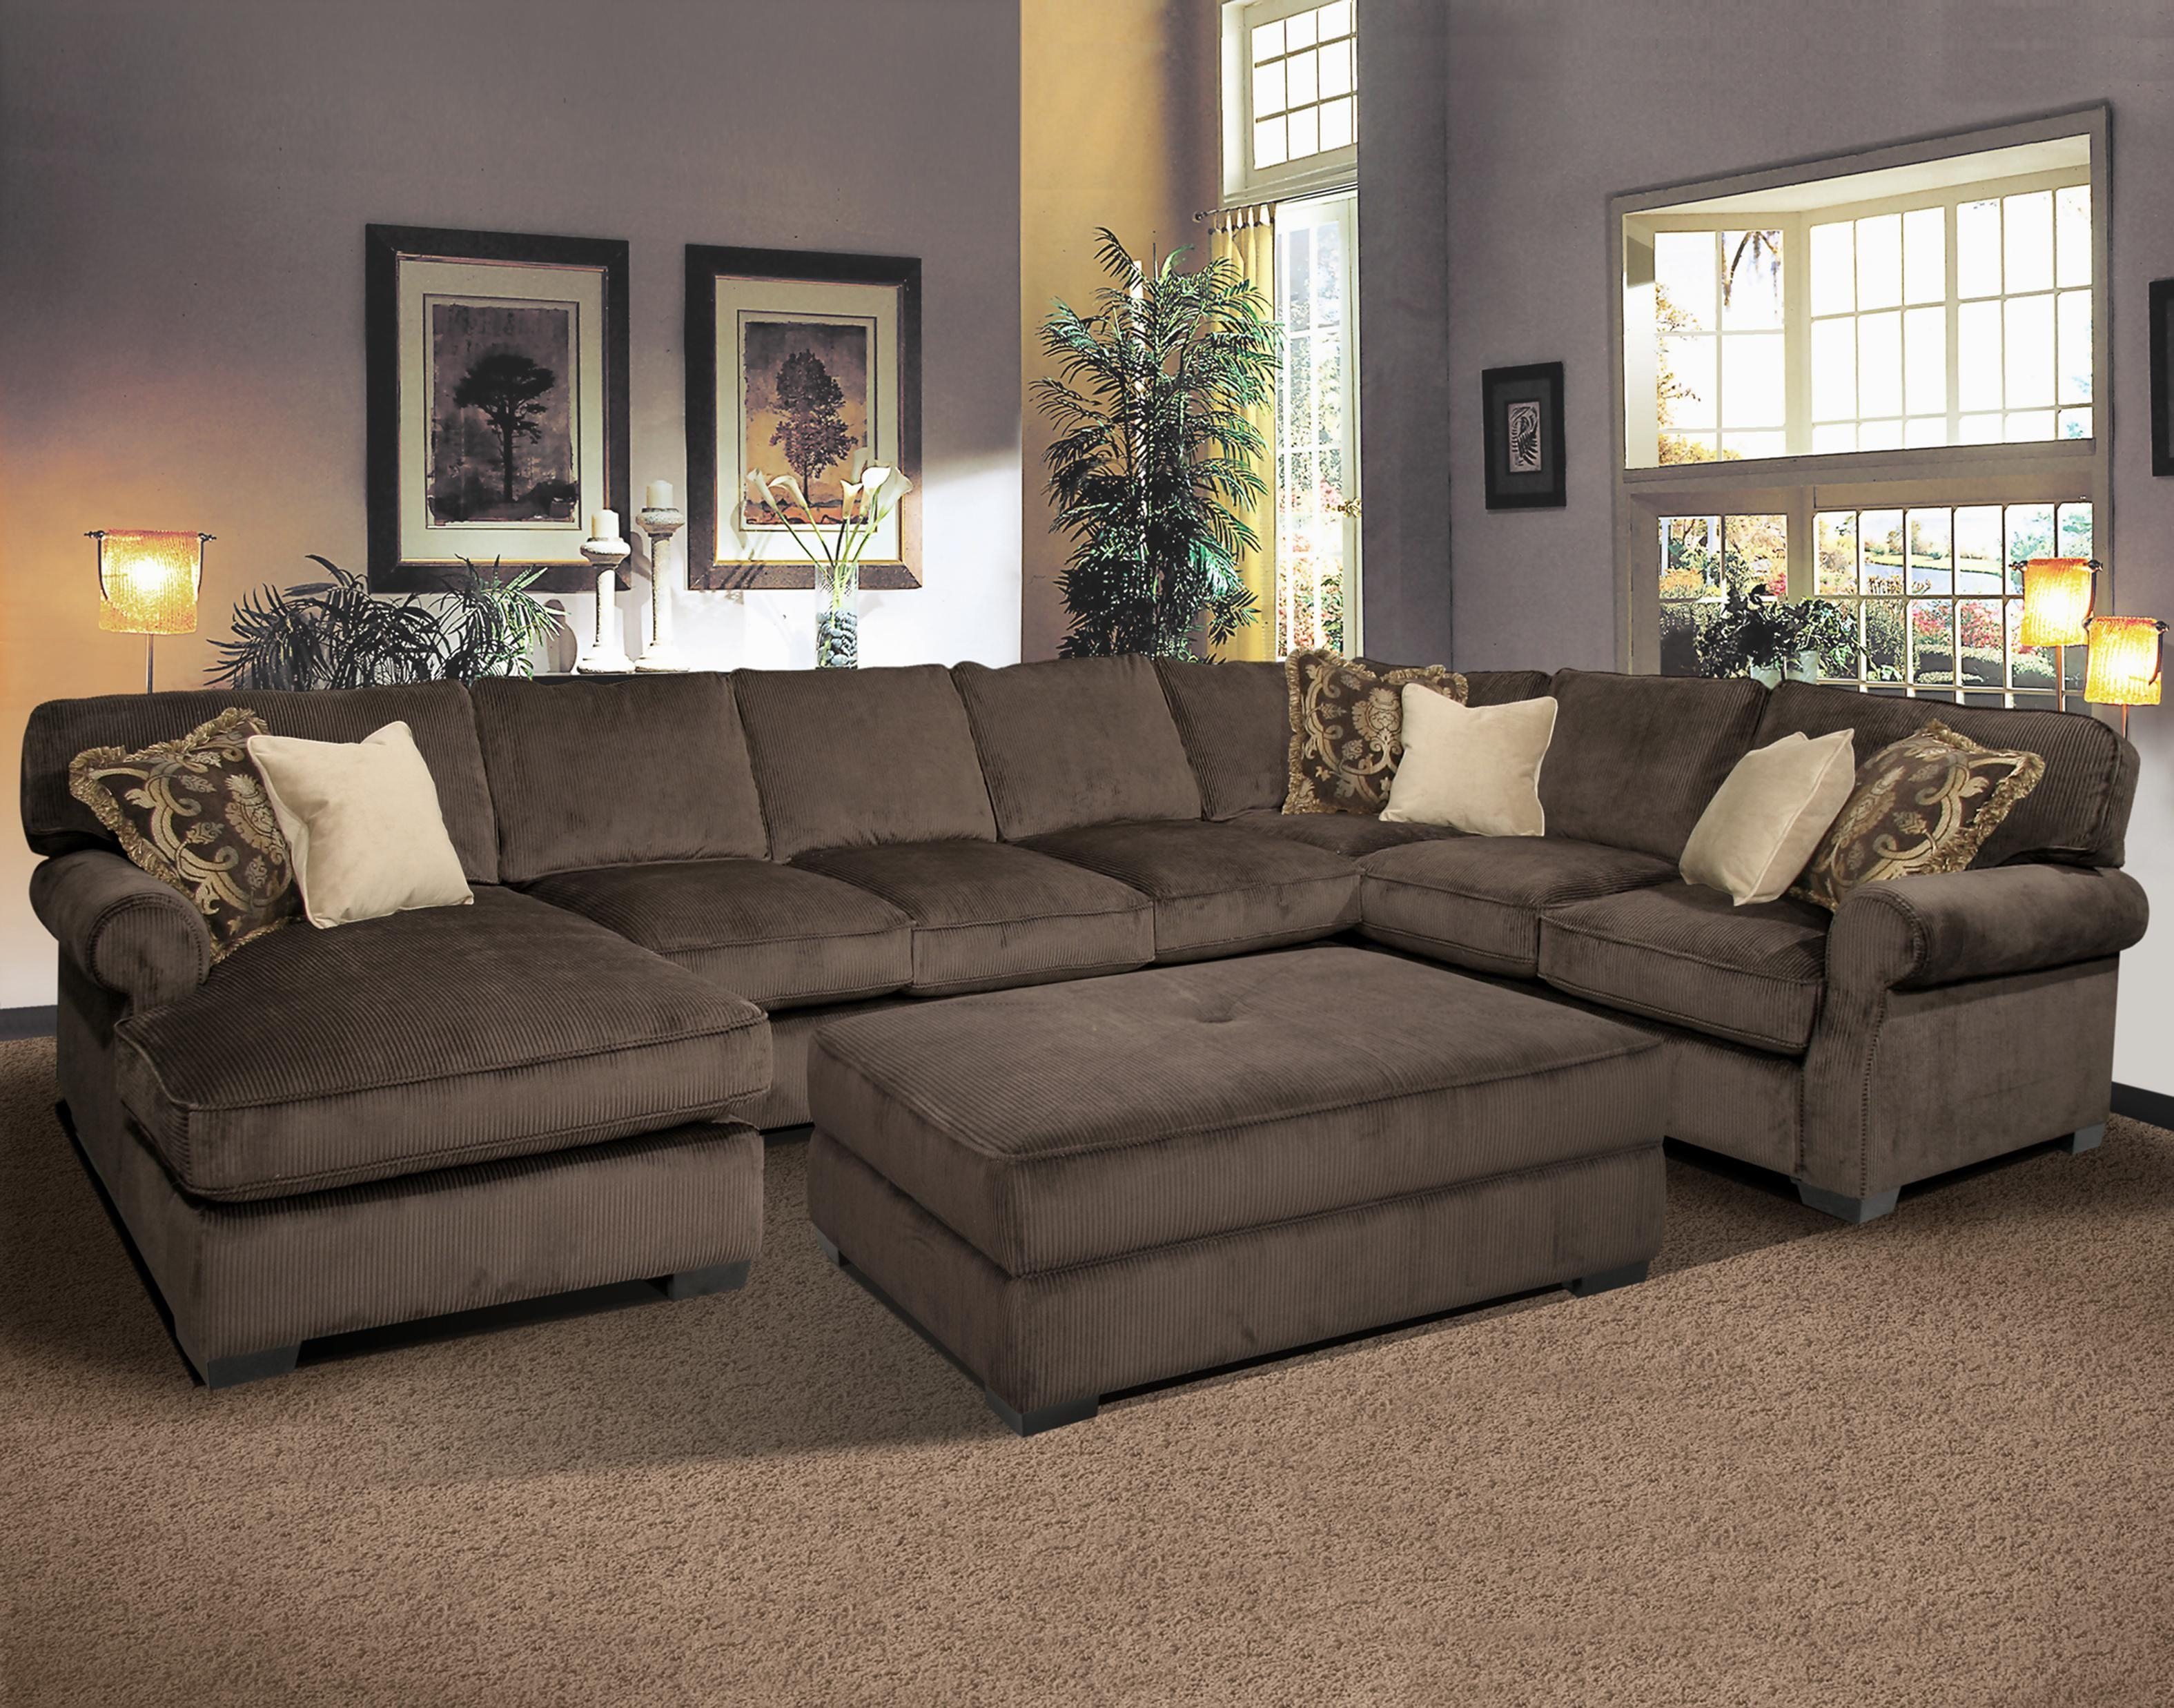 Sofas Center : Cozyown Filled Sectional Sofa For Find Small Sofas Regarding Goose Down Sectional Sofa (View 8 of 15)